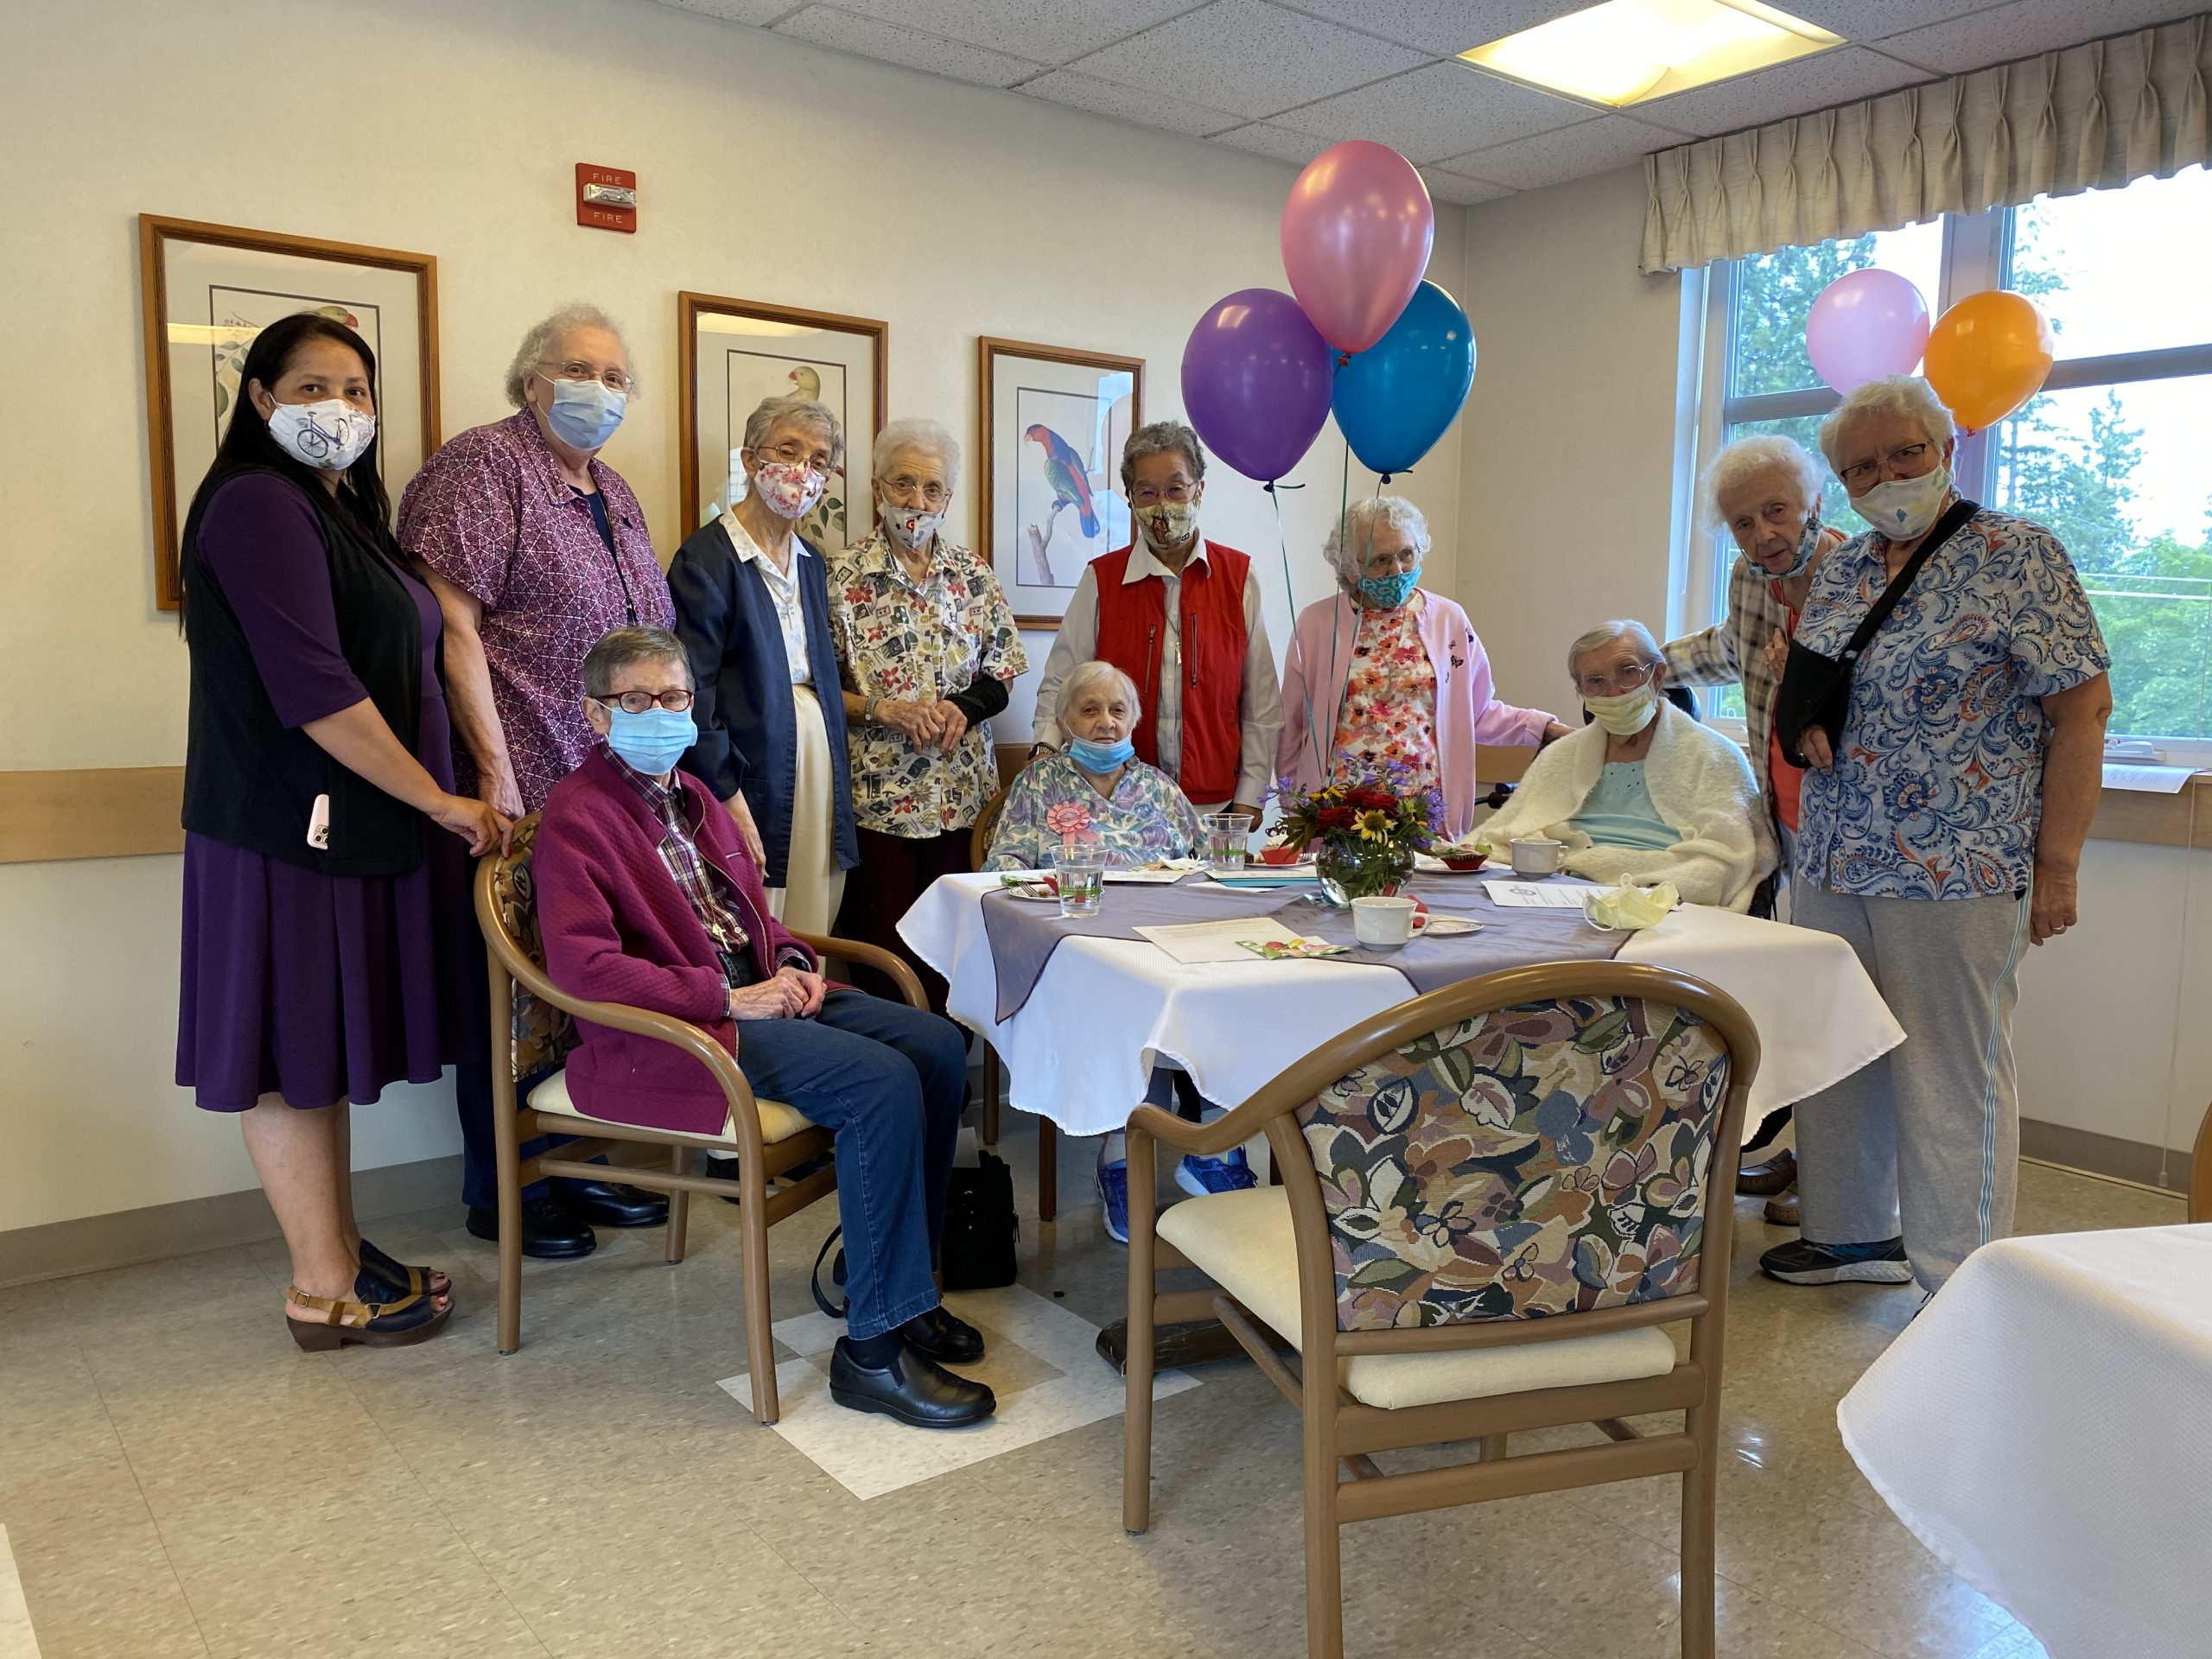 Sr Cecilia Paganessi surrounded by sisters with balloons and treats for 100th birthday